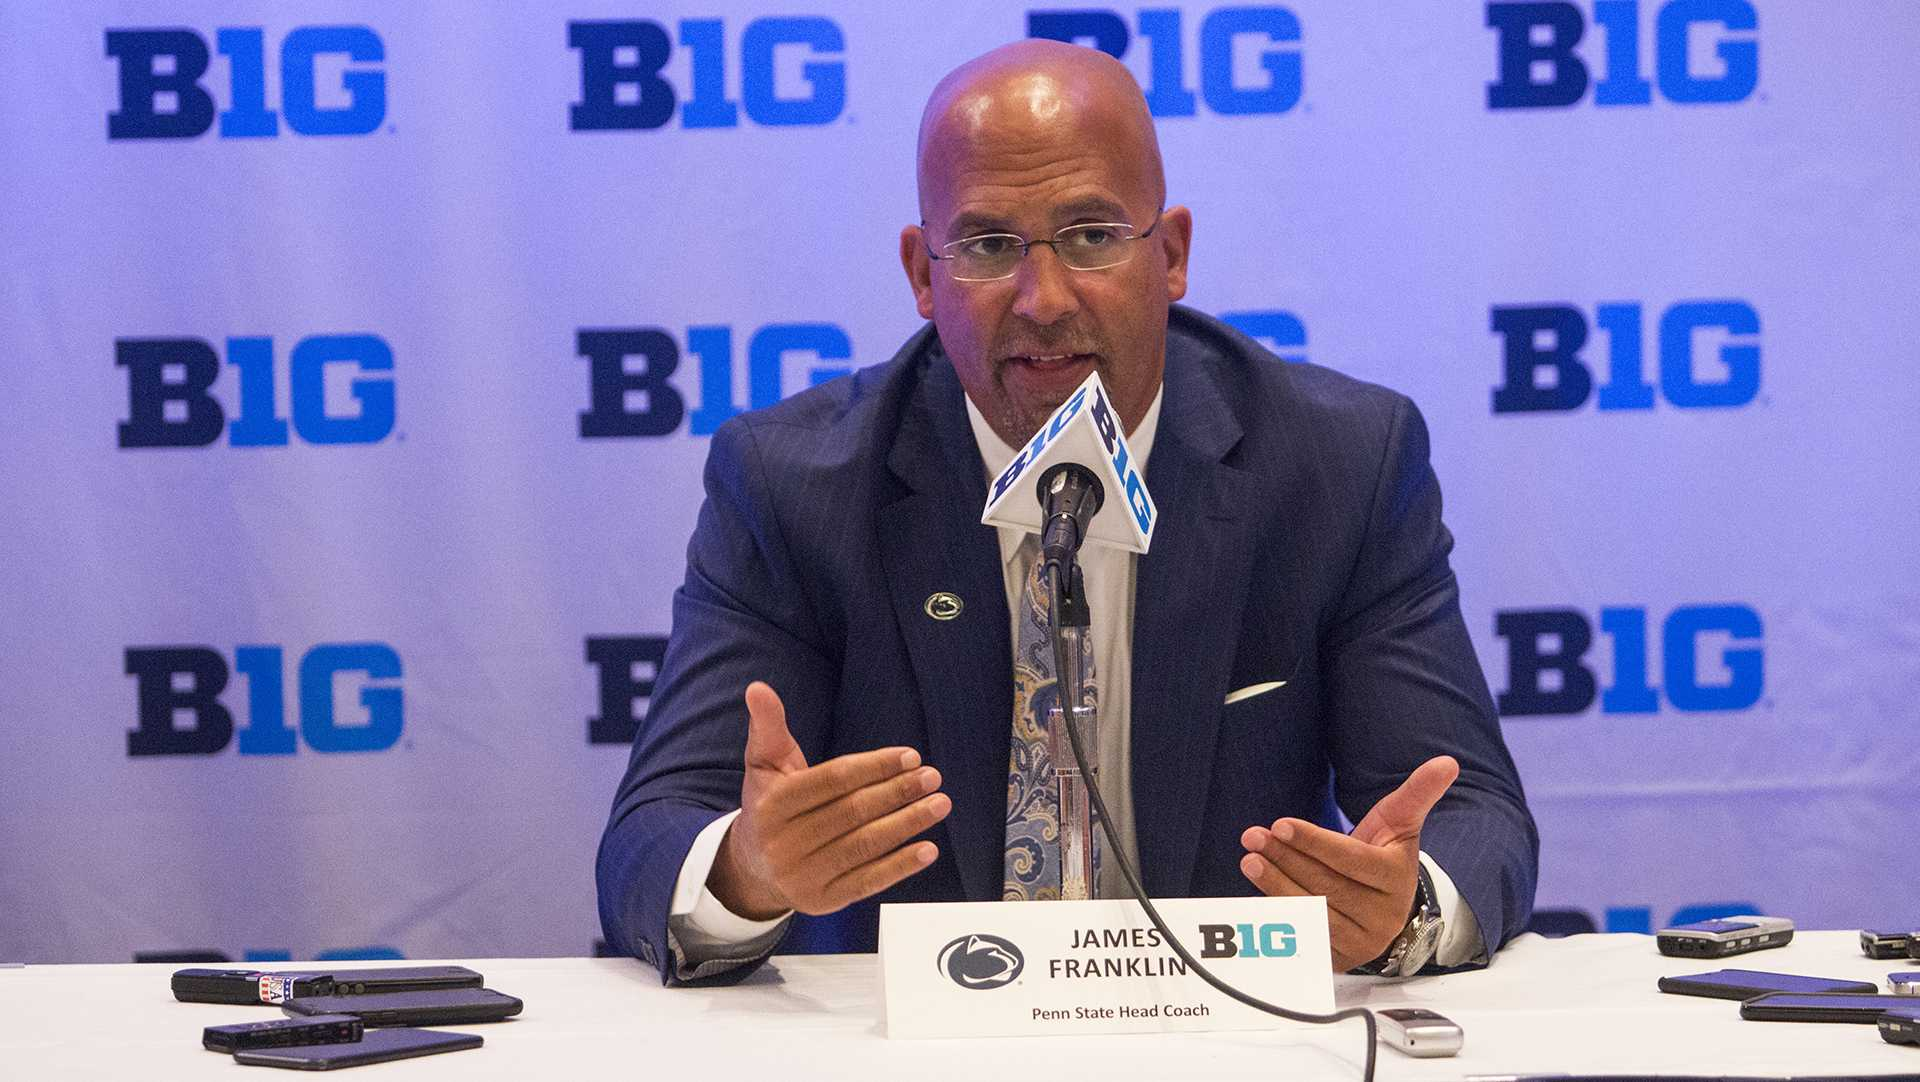 Penn State coach James Franklin speaks with members of the media during the Big Ten Media Days at McCormick Place Convention Center in Chicago on Tuesday, July 25, 2017. (Joseph Cress/The Daily Iowan)